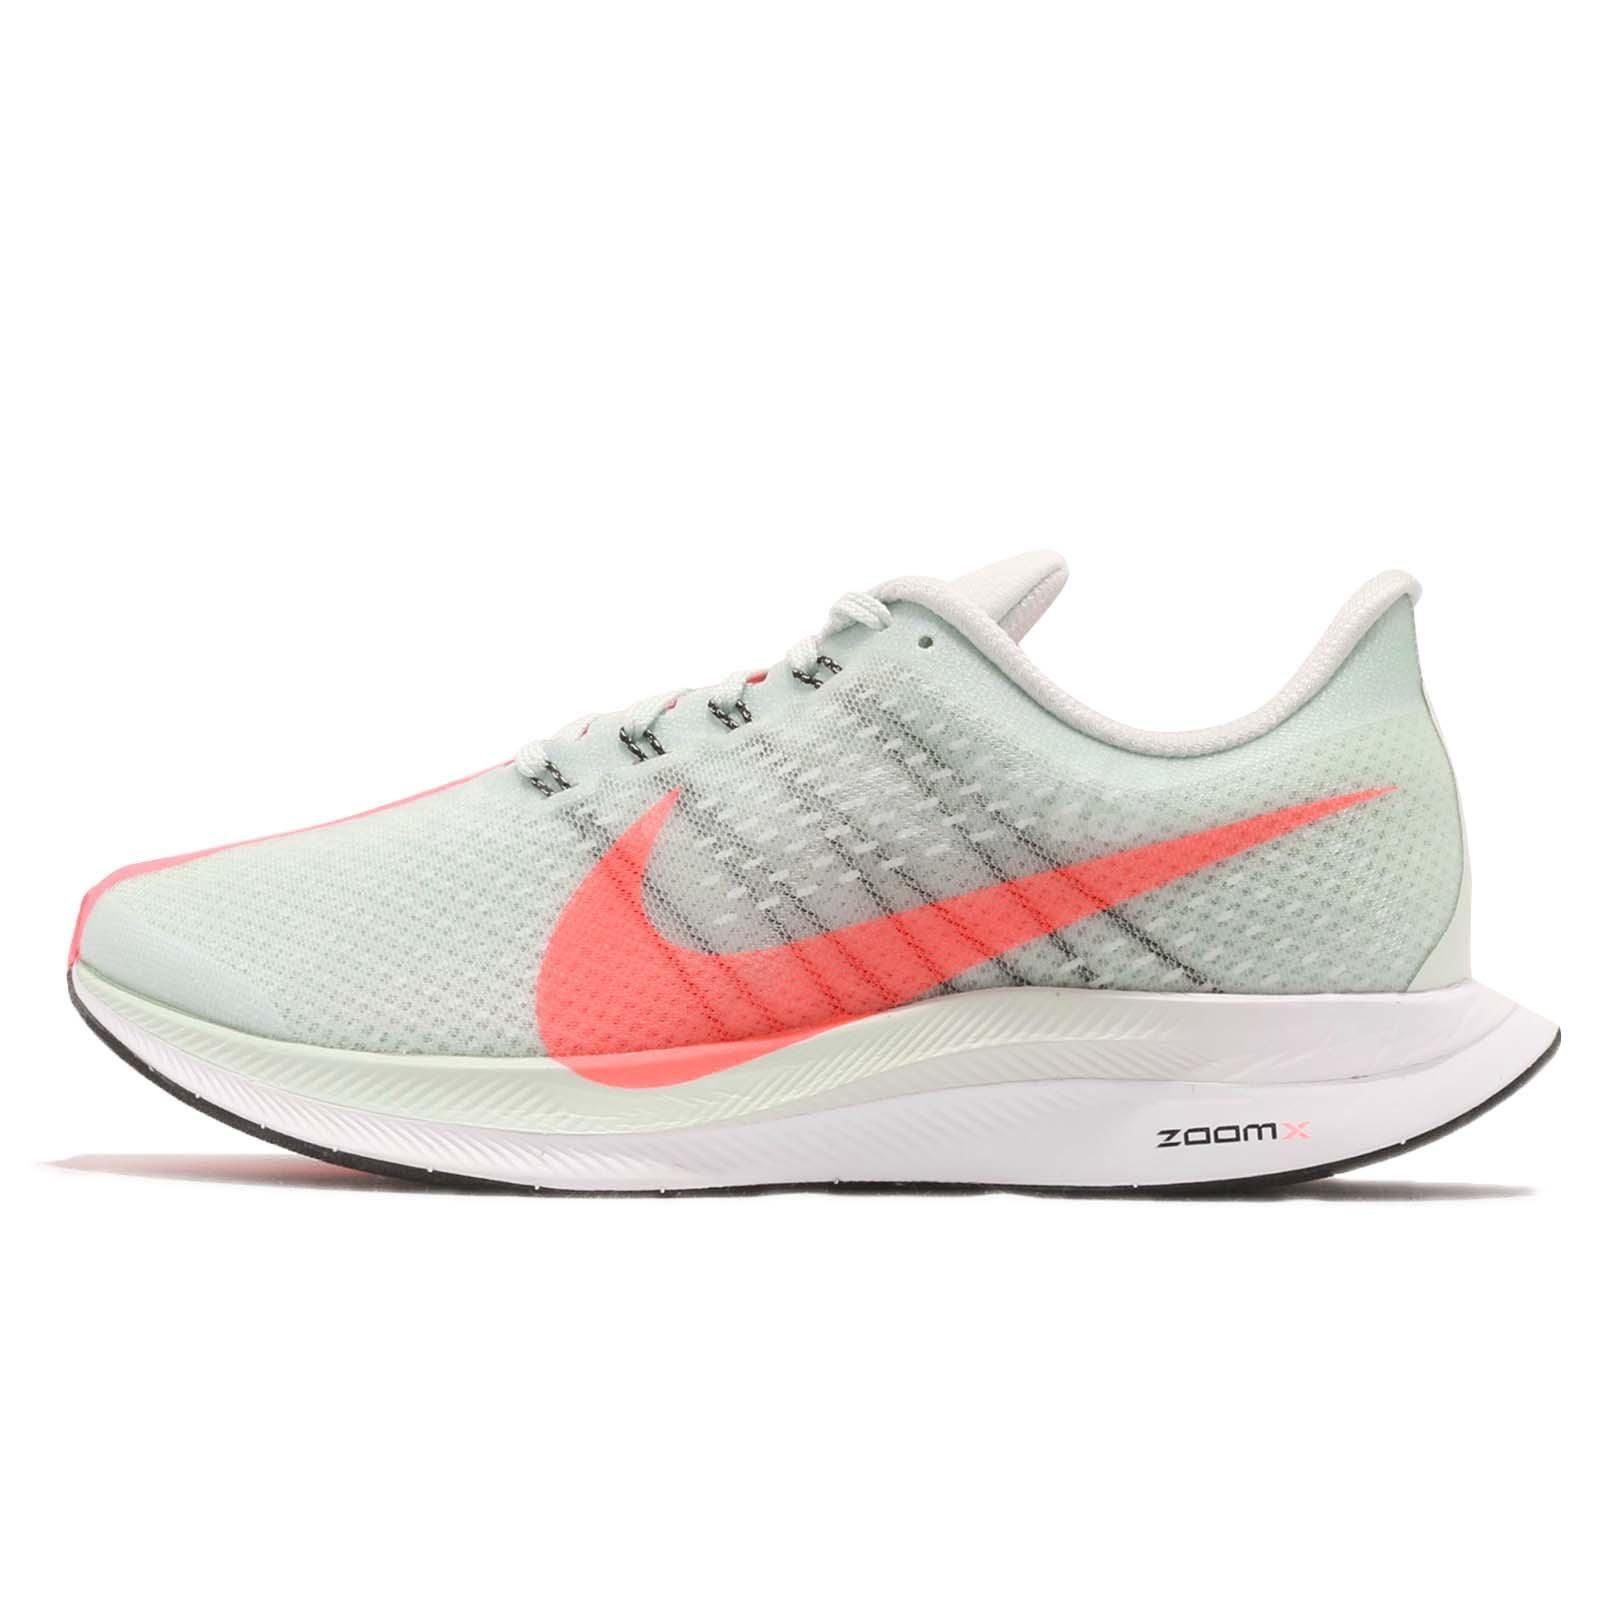 85ec8c920d2f7 Nike Wmns Zoom Pegasus 35 Turbo Barely Grey Hot Punch Running Shoes AJ4115 -060